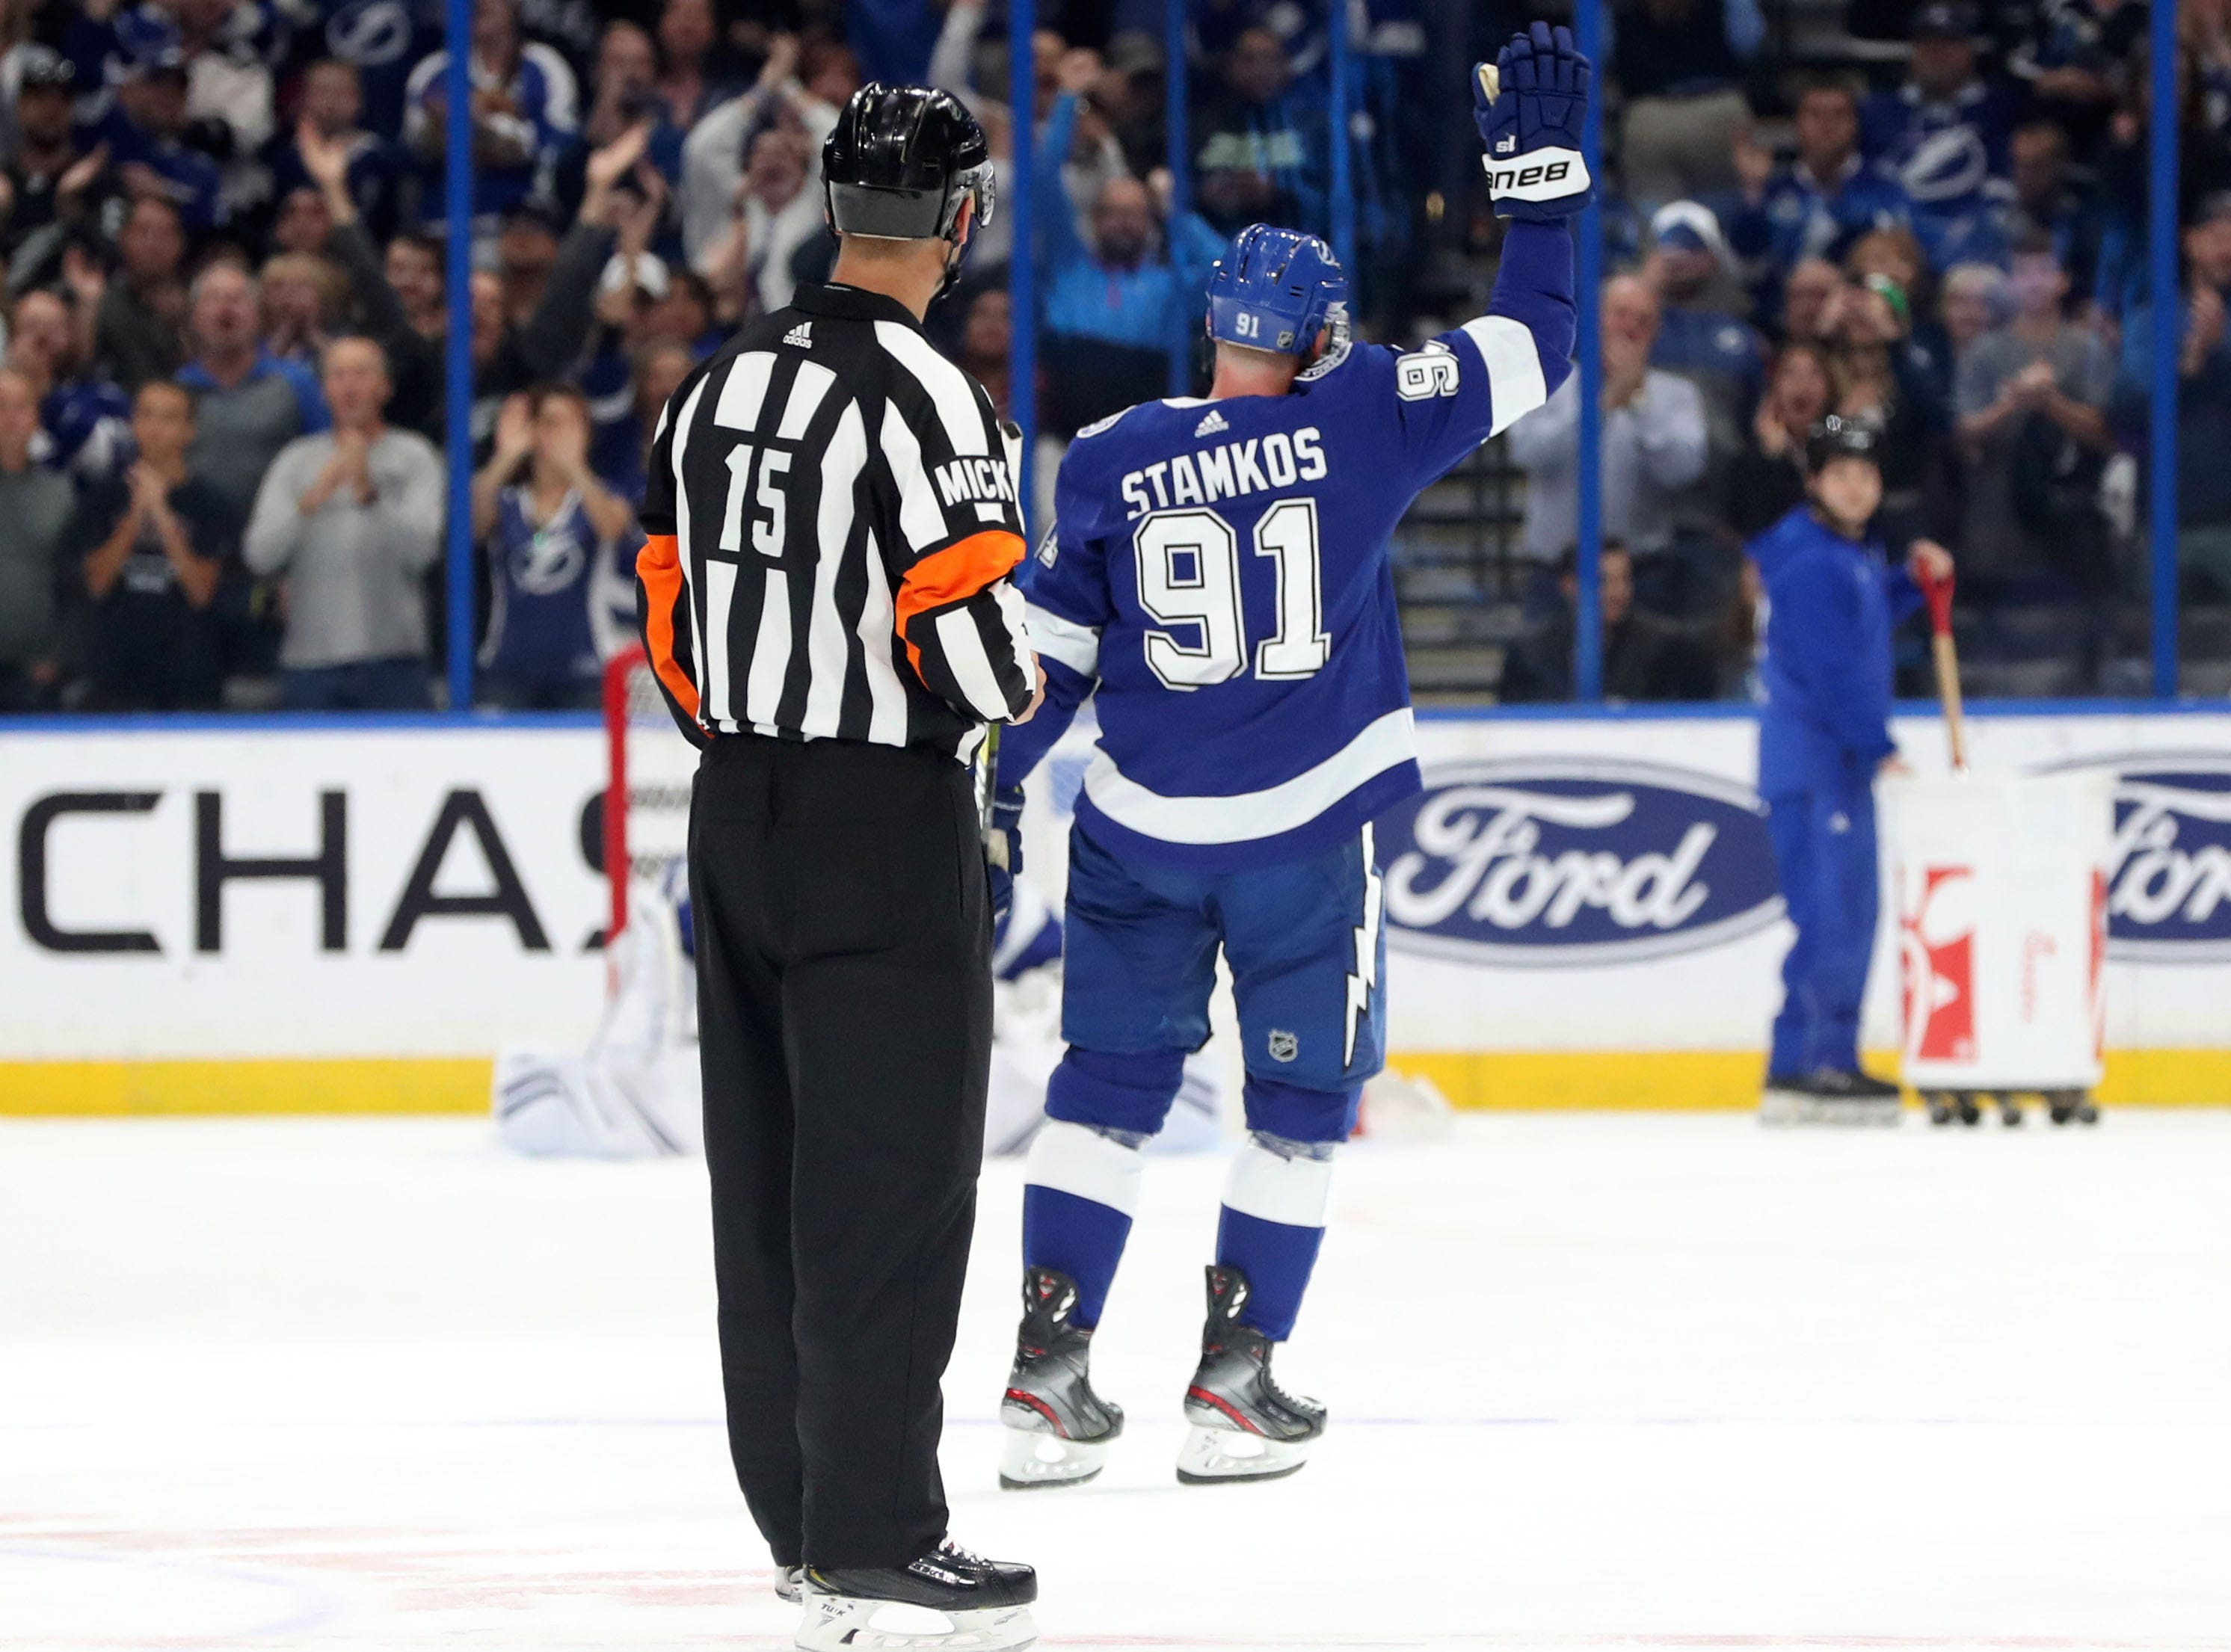 March 18: Tampa Bay Lightning center Steven Stamkos salutes the fans after becoming the franchise's all-time leading scorer.